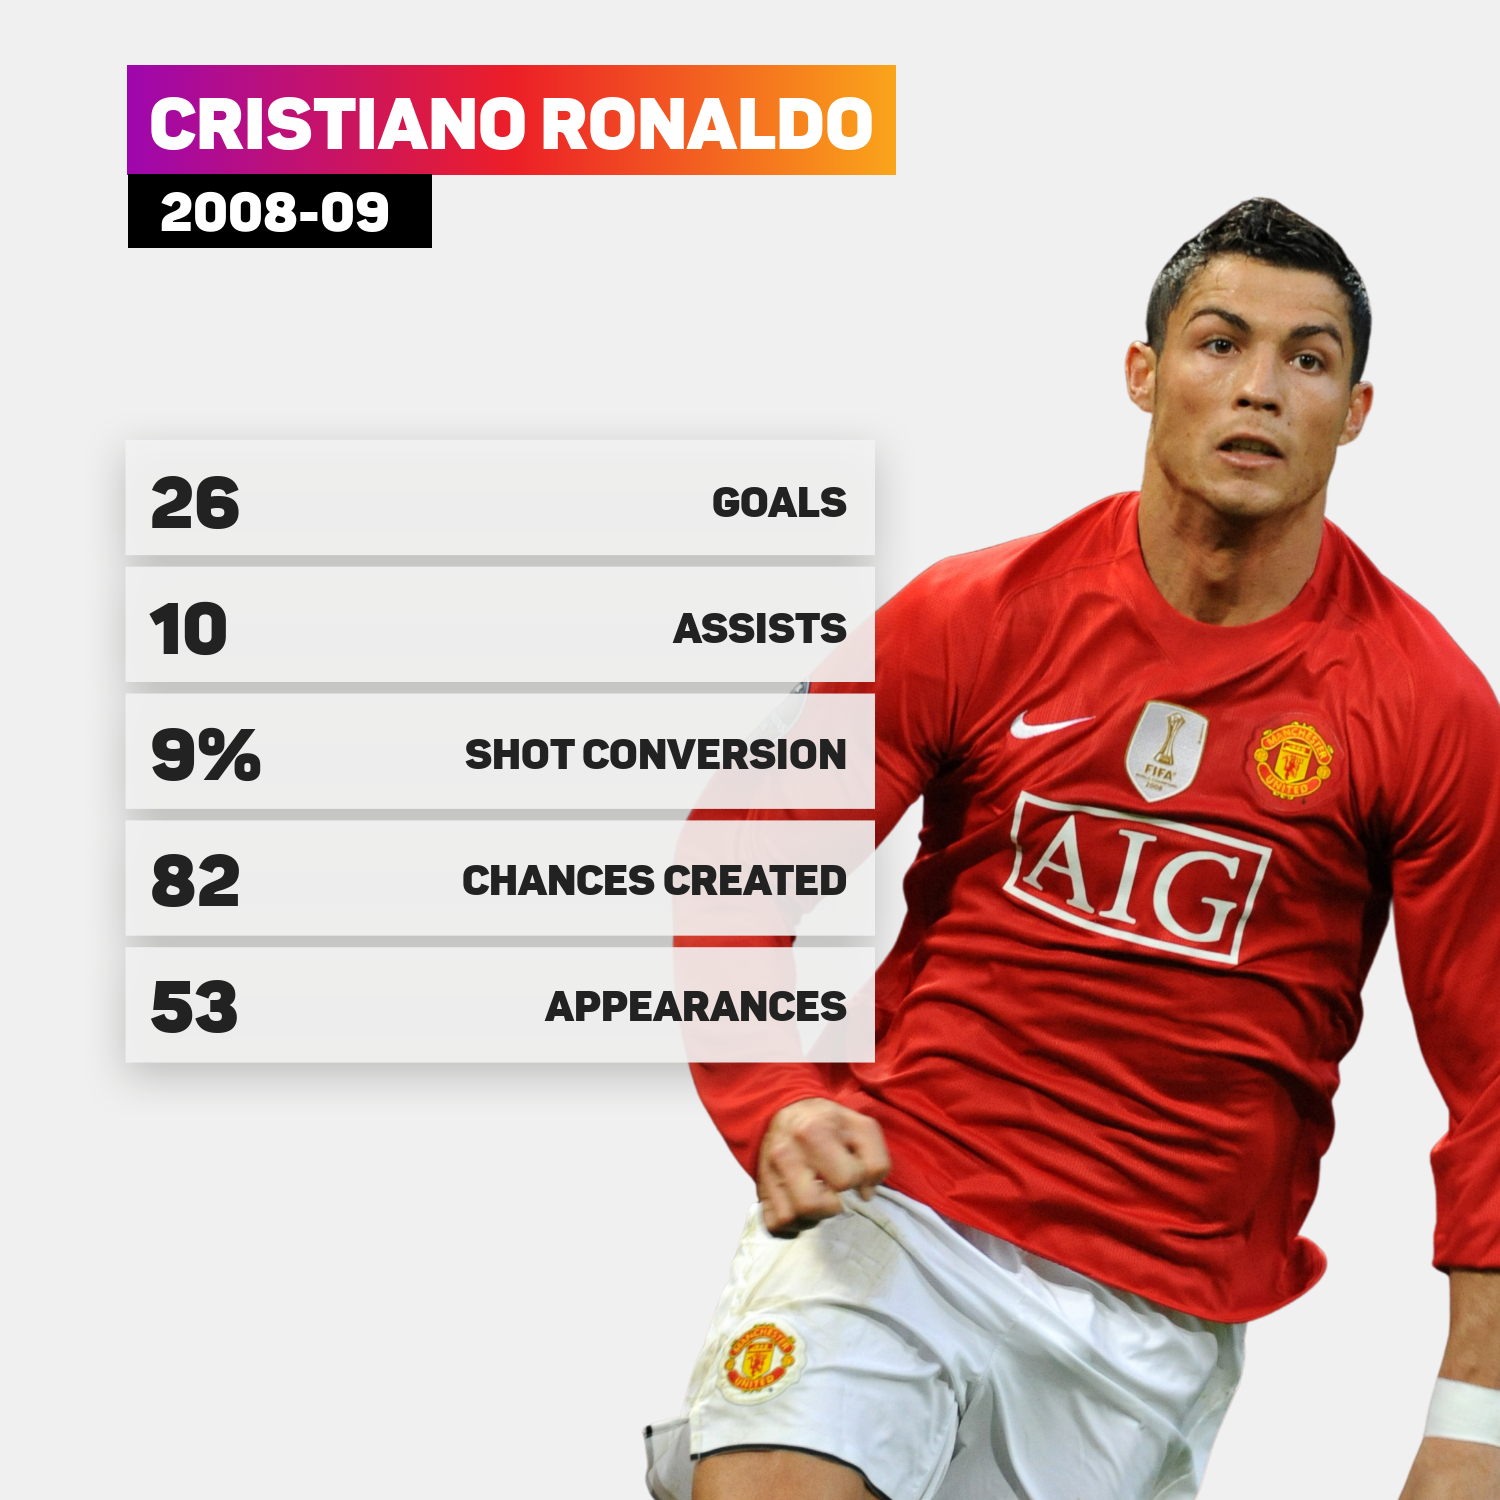 Cristiano Ronaldo's final season at Manchester United, by the numbers